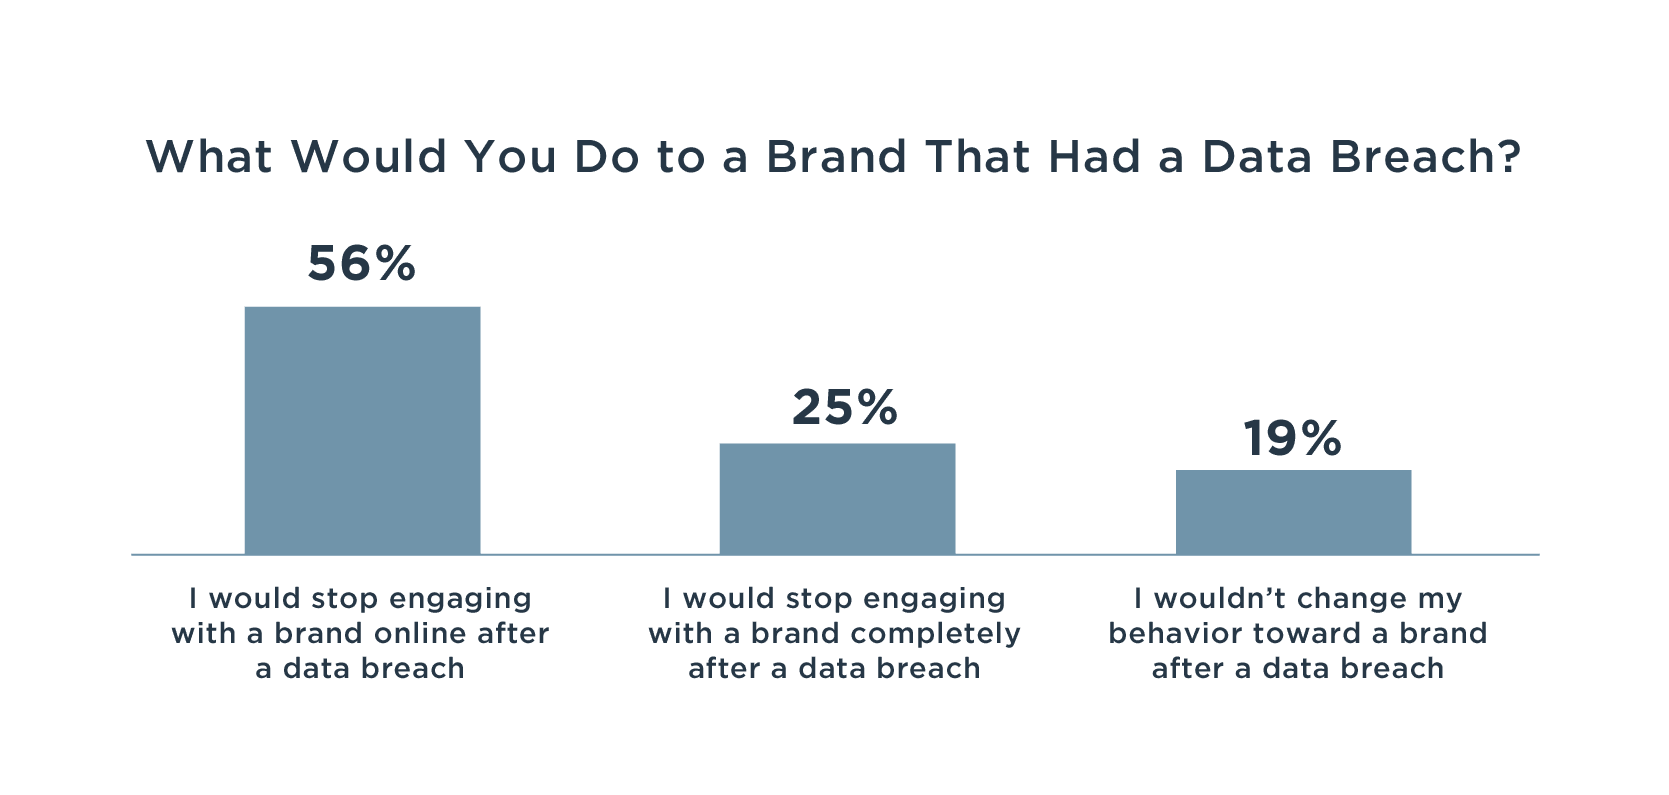 What would you do to a brand that had a data breach bar chart.